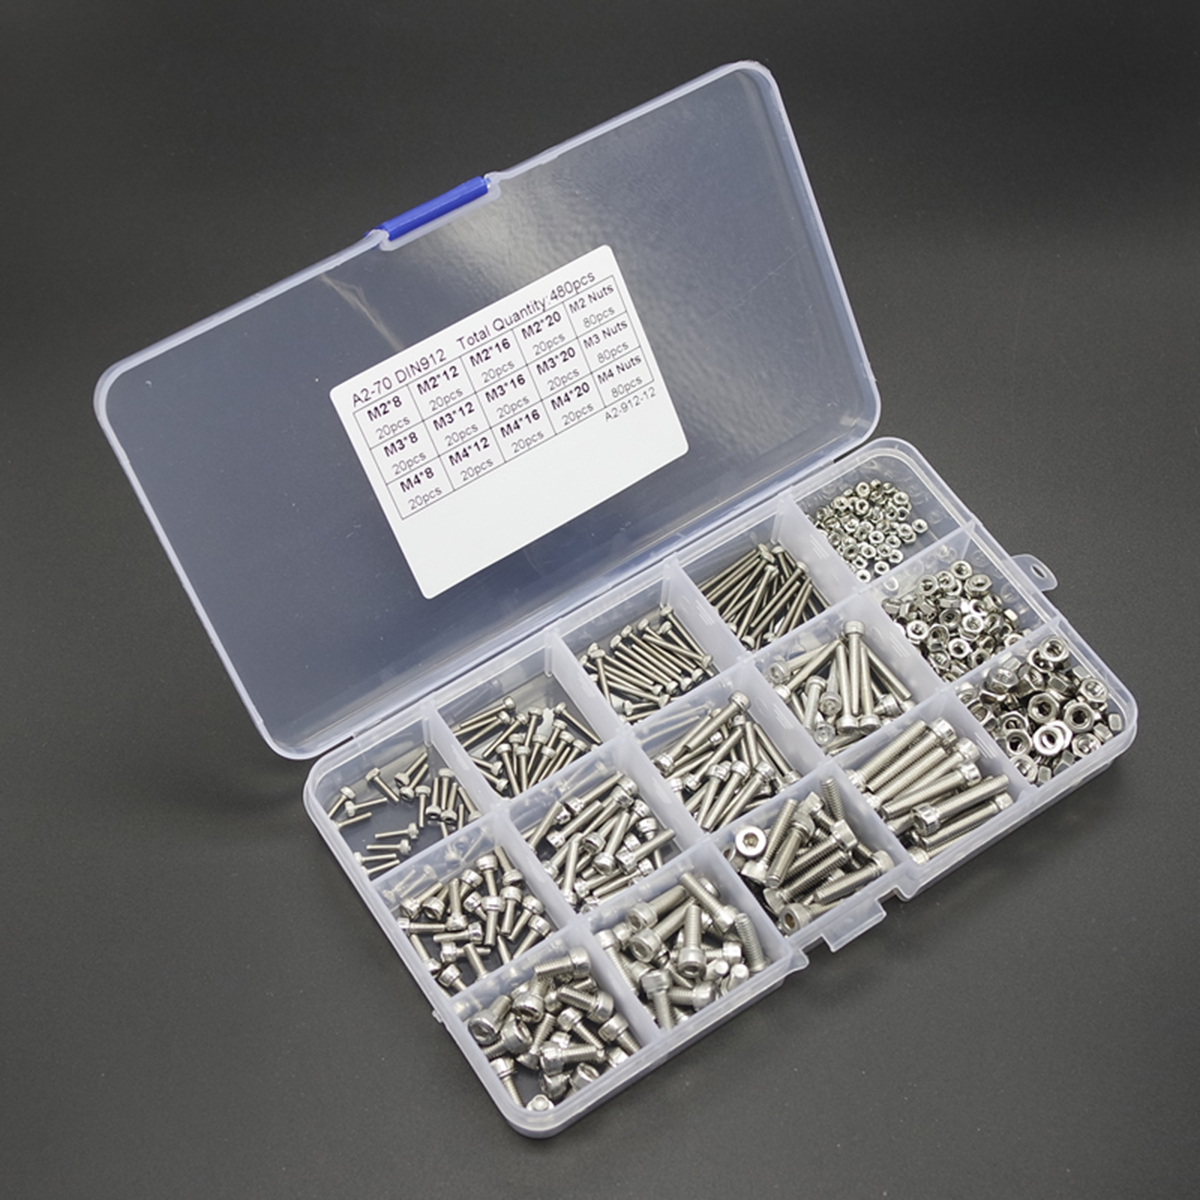 480pcs Stainless Steel Hex Socket Screws M2 M3 M4 Head Cap Screw Nut Set With Box Mayitr 50 60hz automatic voltage regulator for kutai brushless generator avr ea16 free shipping